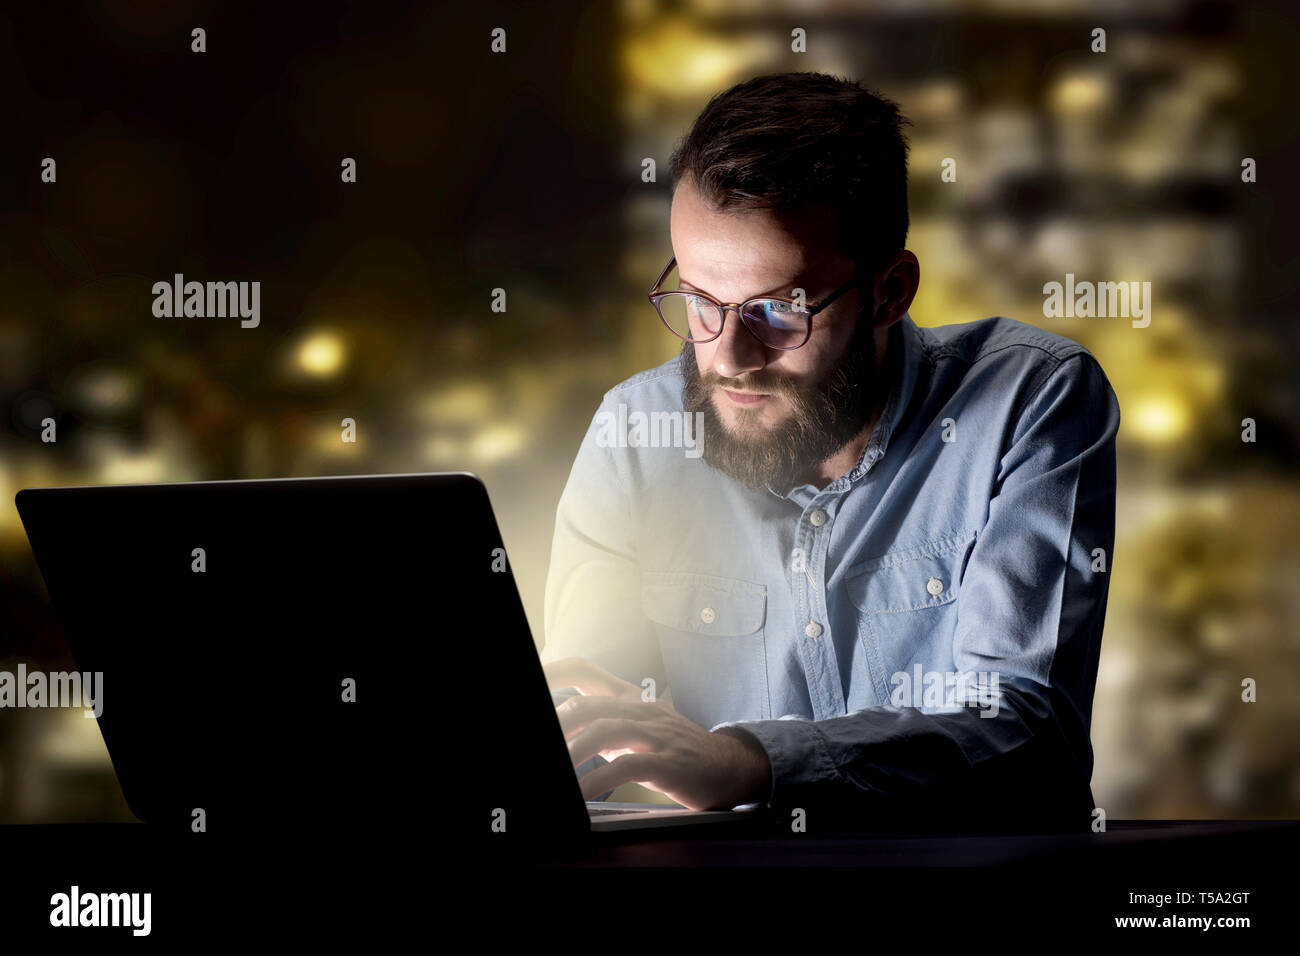 Young handsome businessman working late at night in the office with city lights in the background - Stock Image